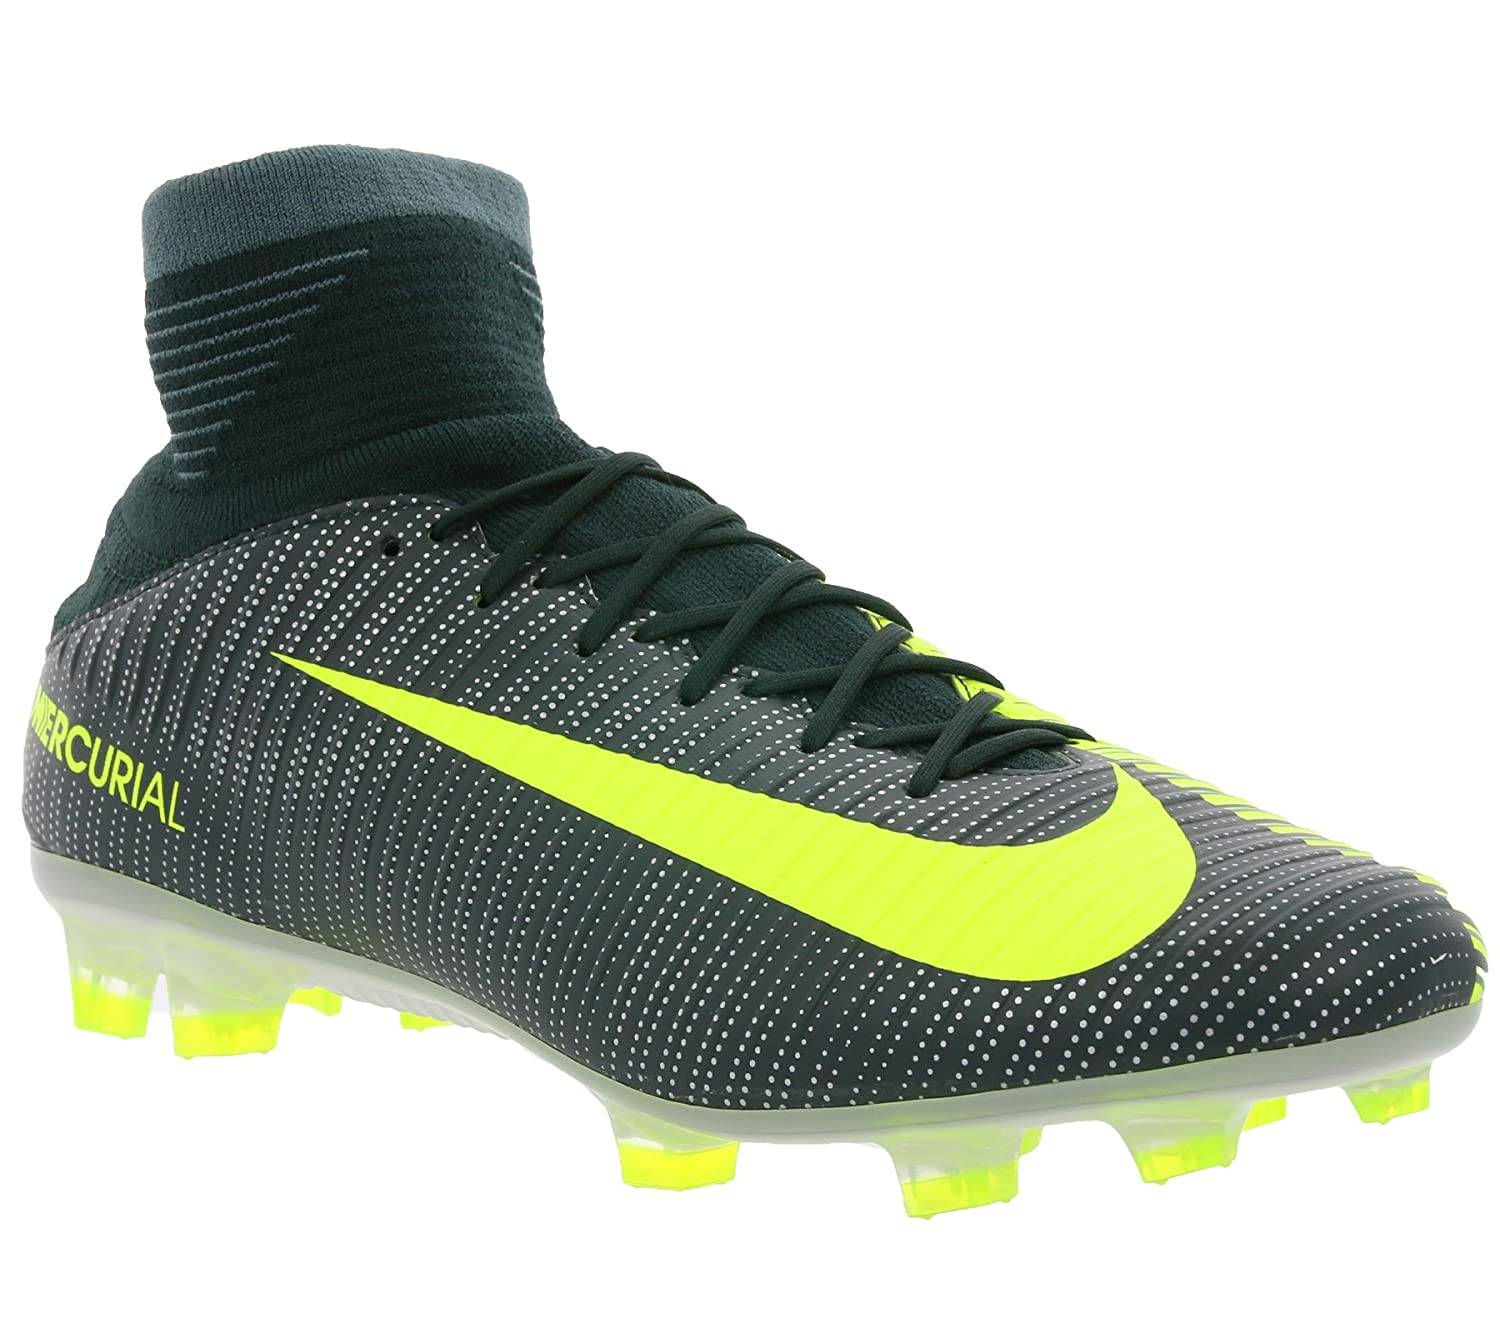 Nike 852518 376, Scarpe da Calcio Uomo: MainApps: Amazon.it